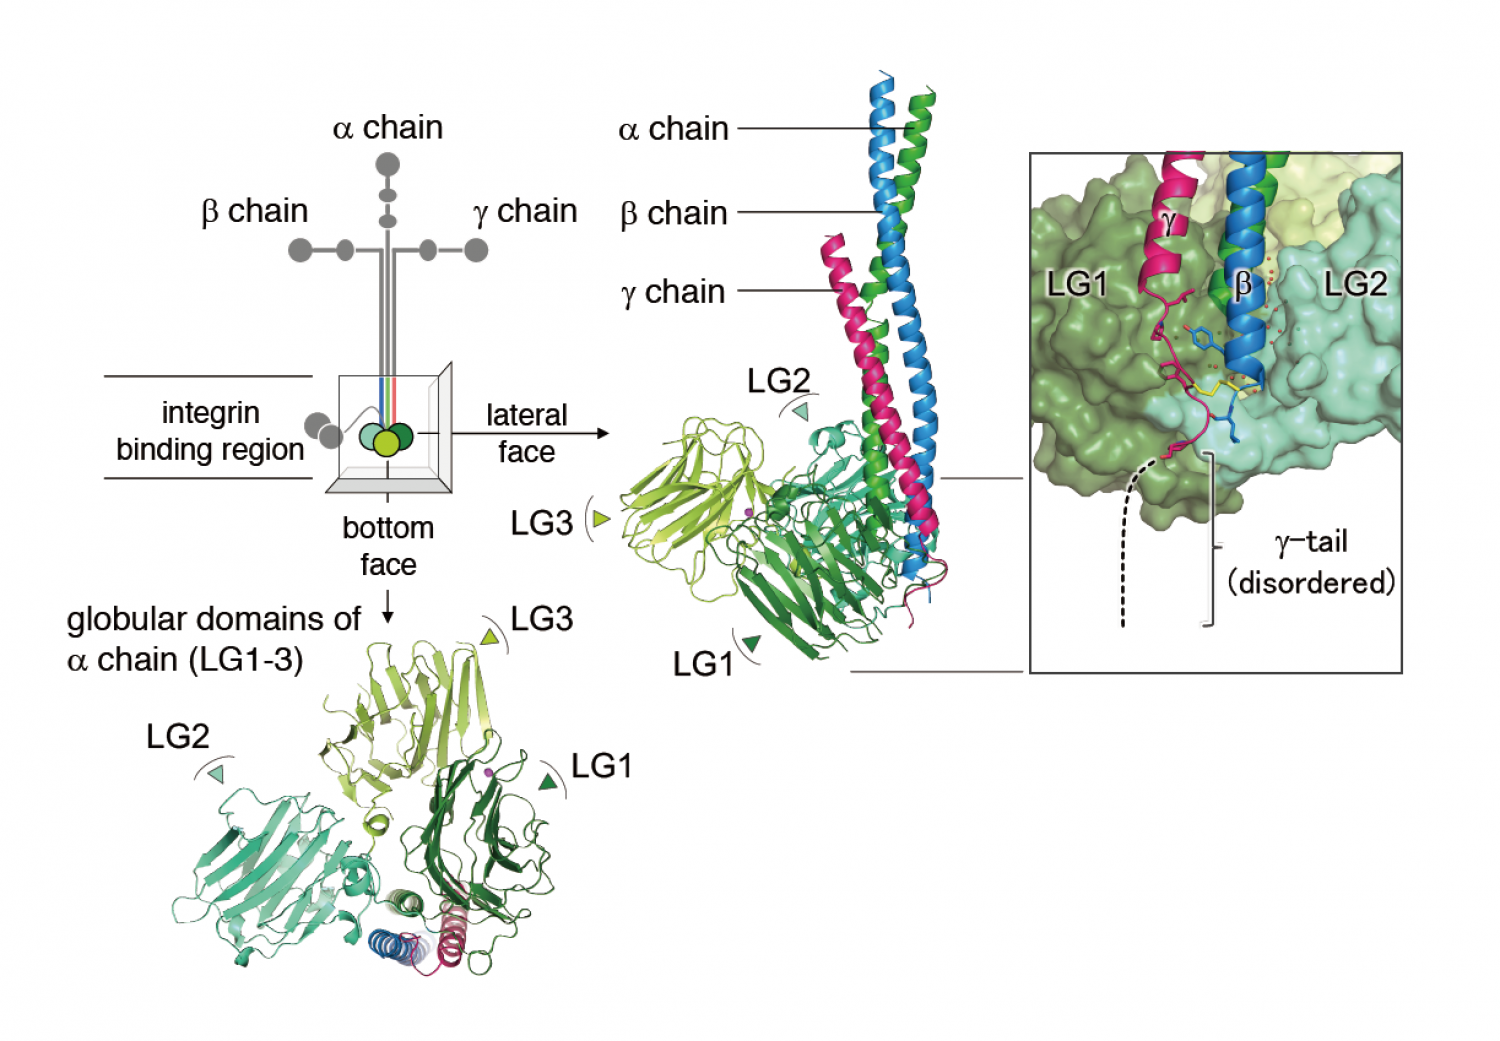 proteins keep a grip on cells The Laminin Molecule Shirt crystal structure of the integrin binding region of laminin c terminal g chain (g tail), which is critical segment for integrin binding, was disordered